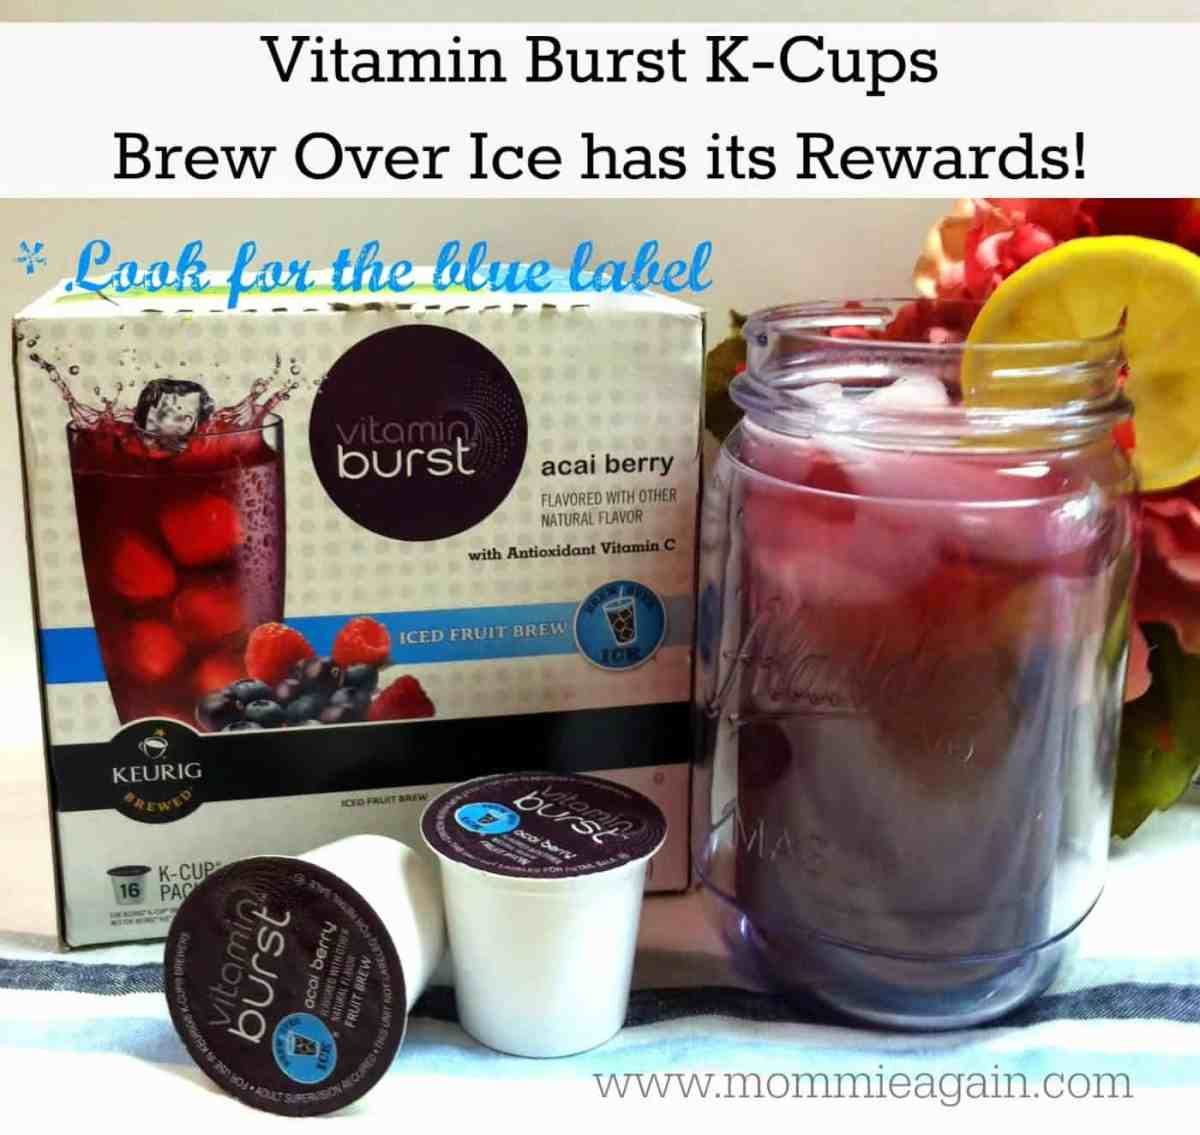 Our Best K-Cup Flavors include Vitamin Burst and Lemonade...What's Yours?